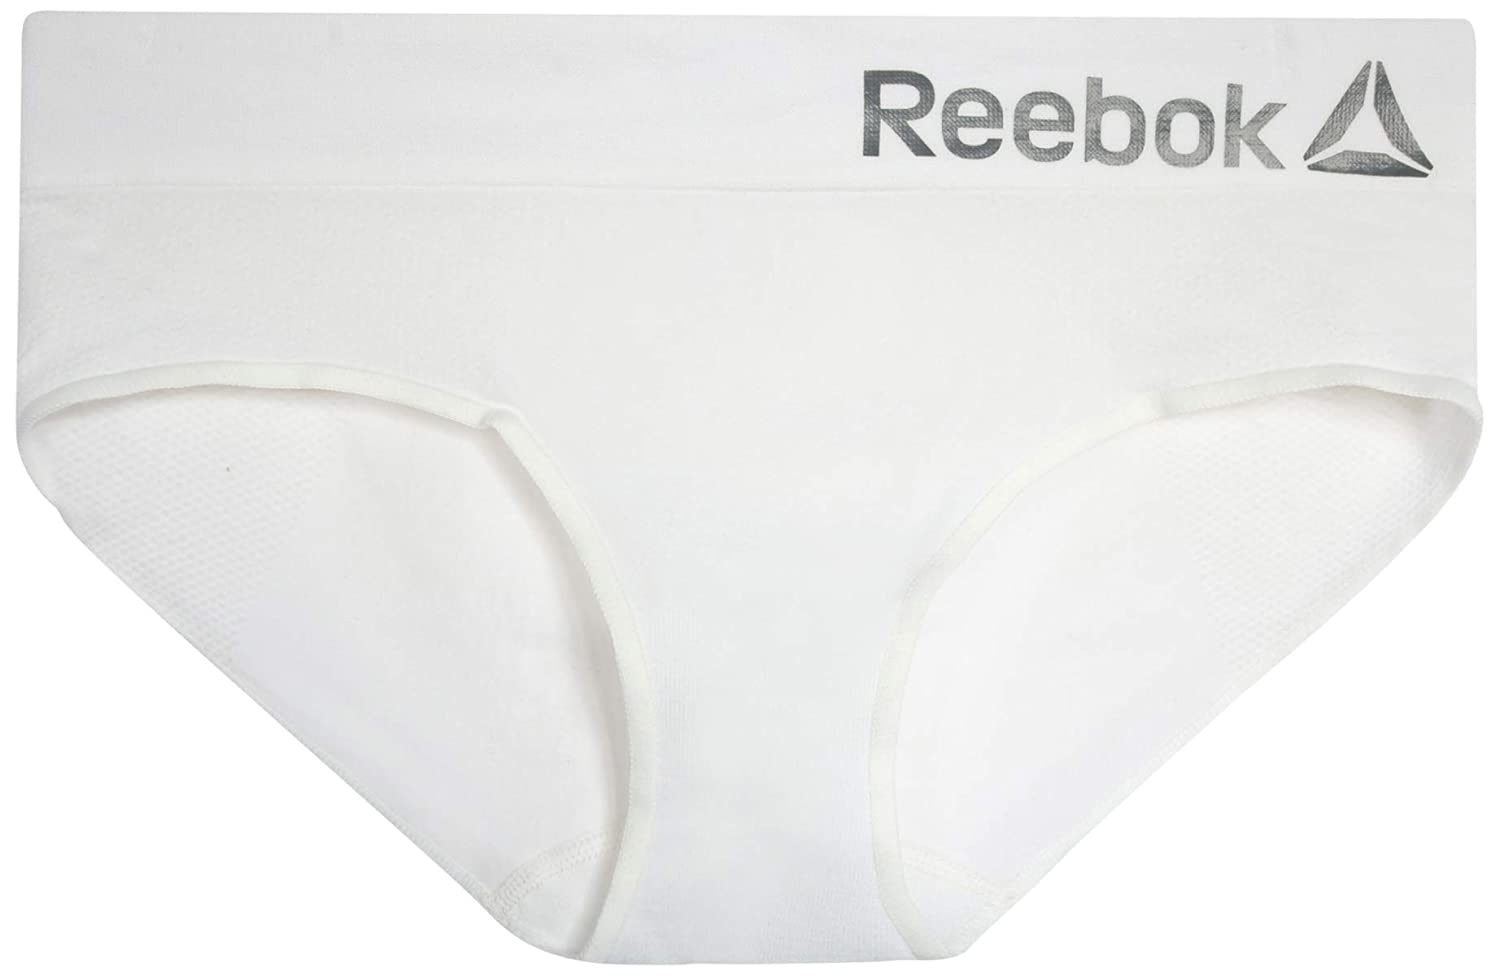 d84729e5c36d Reebok Womens Seamless Hipster Panties 3-Pack at Amazon Women s Clothing  store